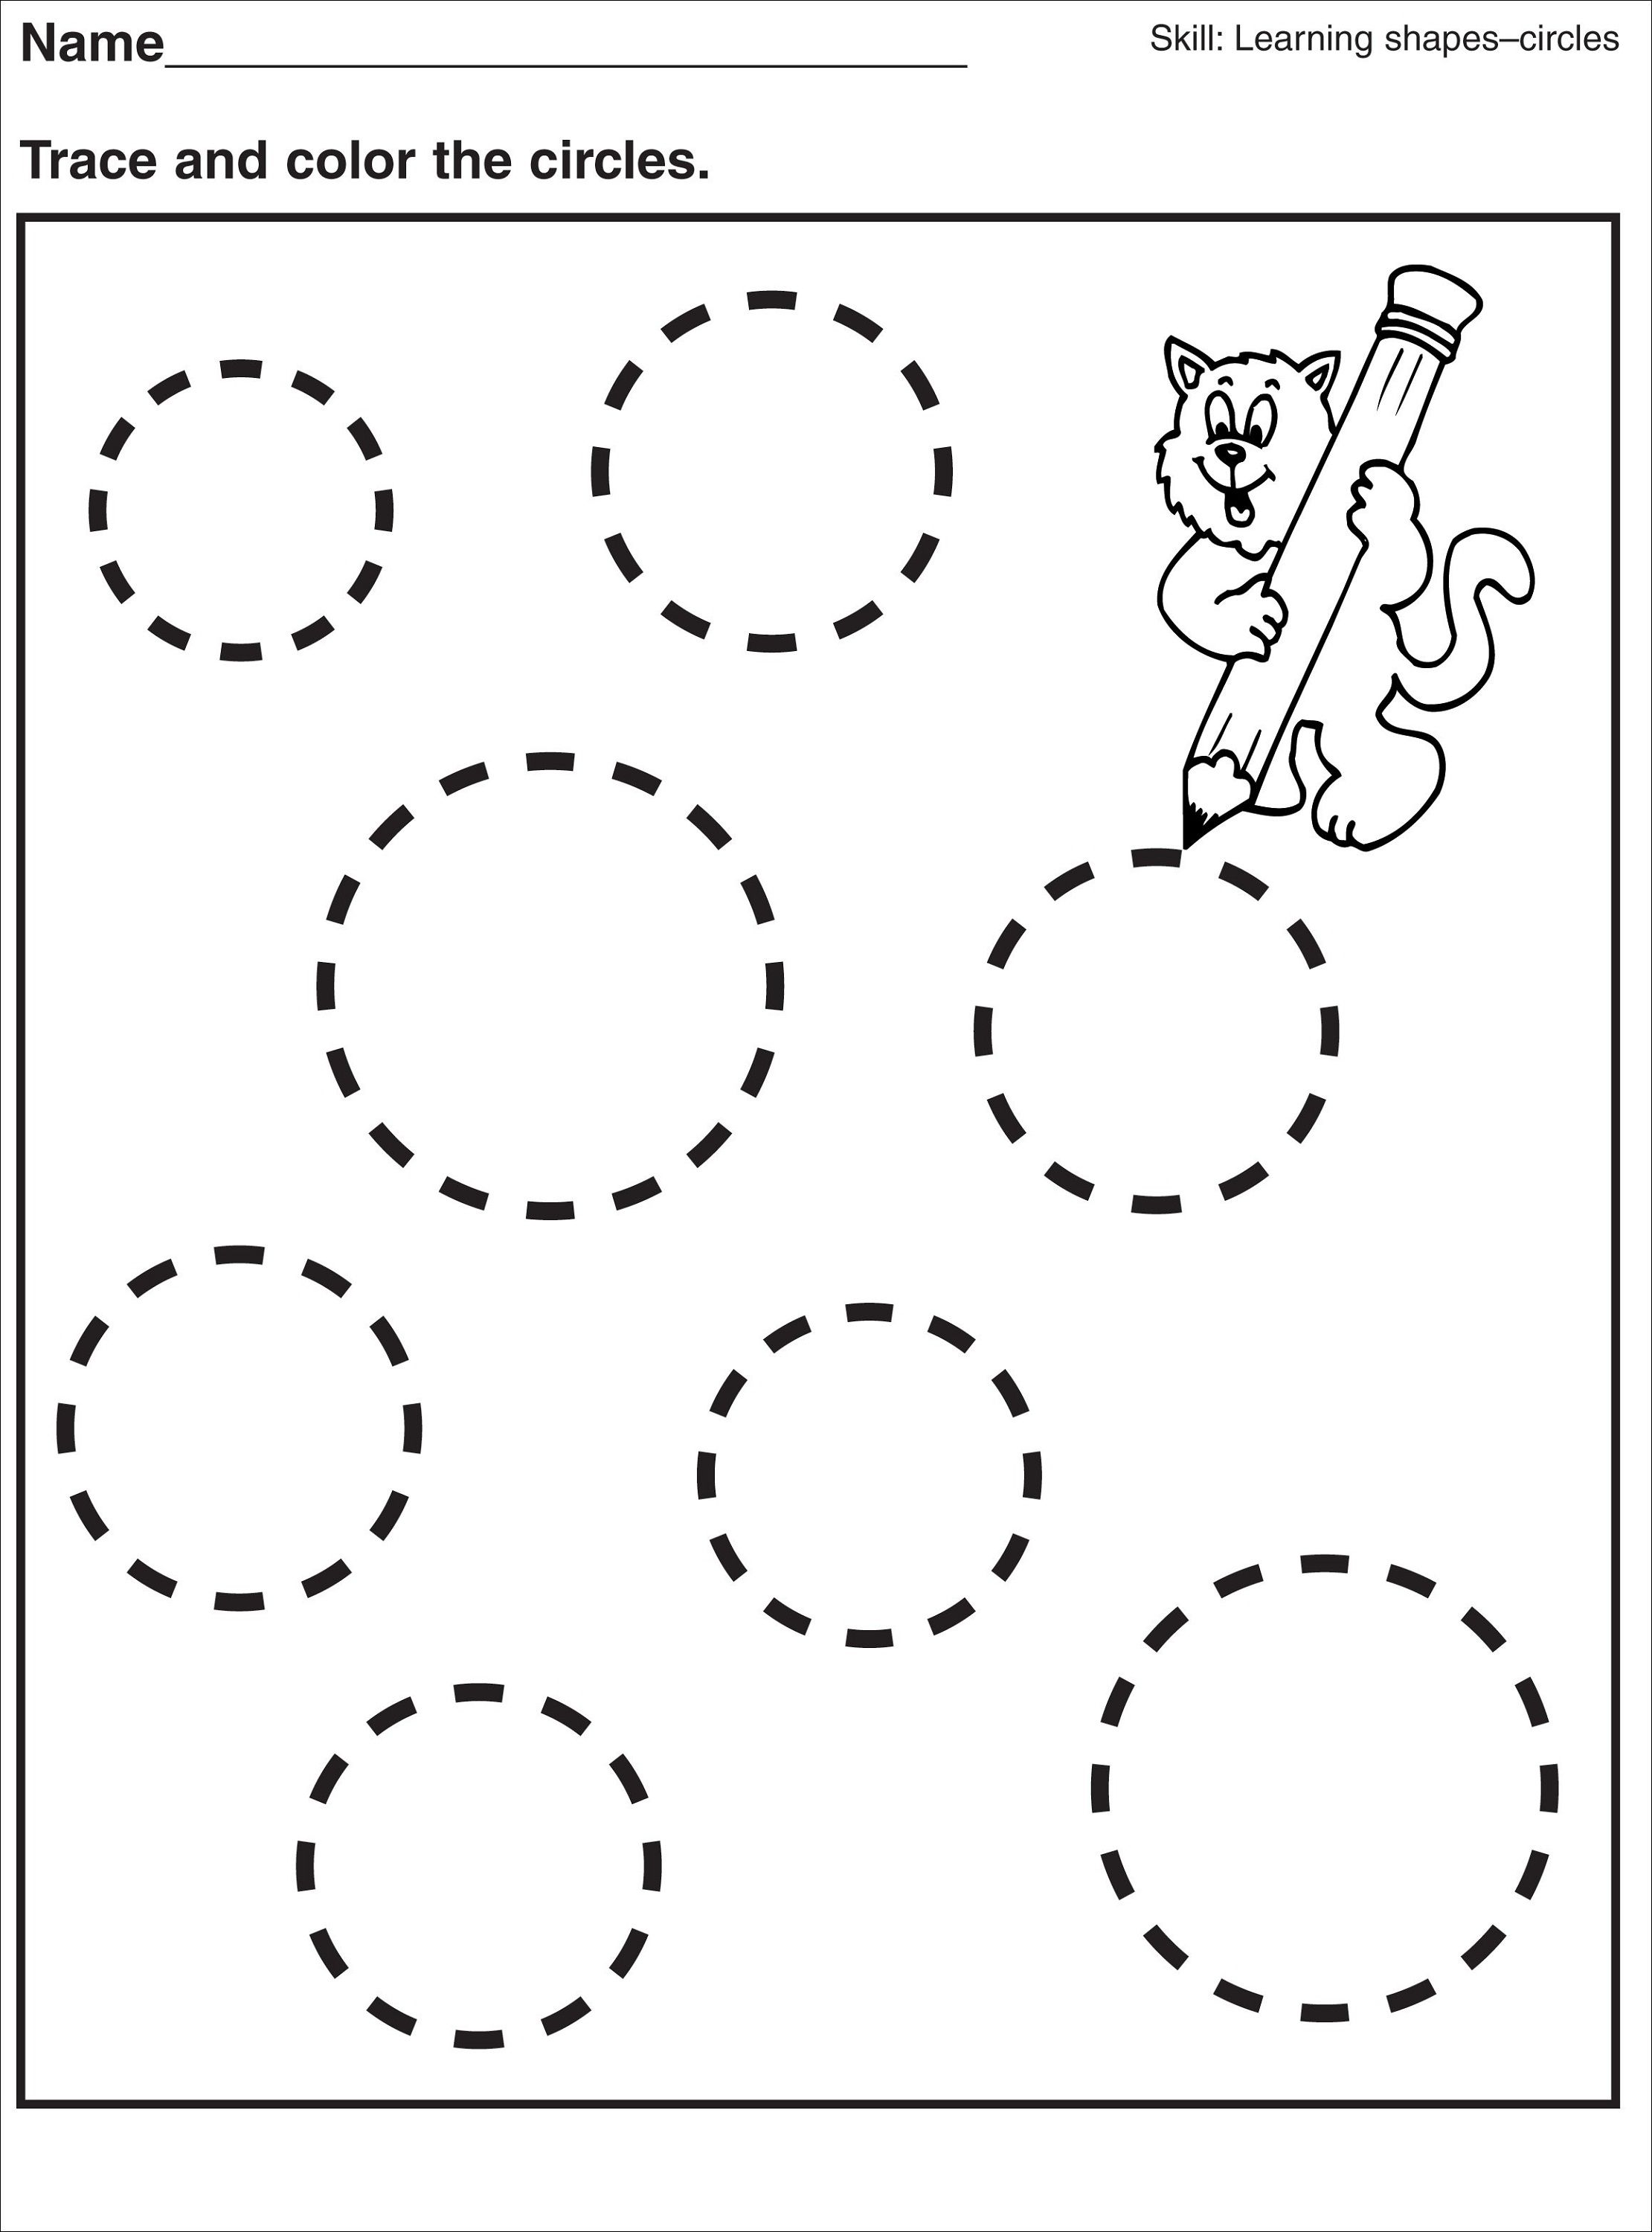 worksheet Circle Area Worksheet tracing circle worksheets for preschool activity shelter kids shelter